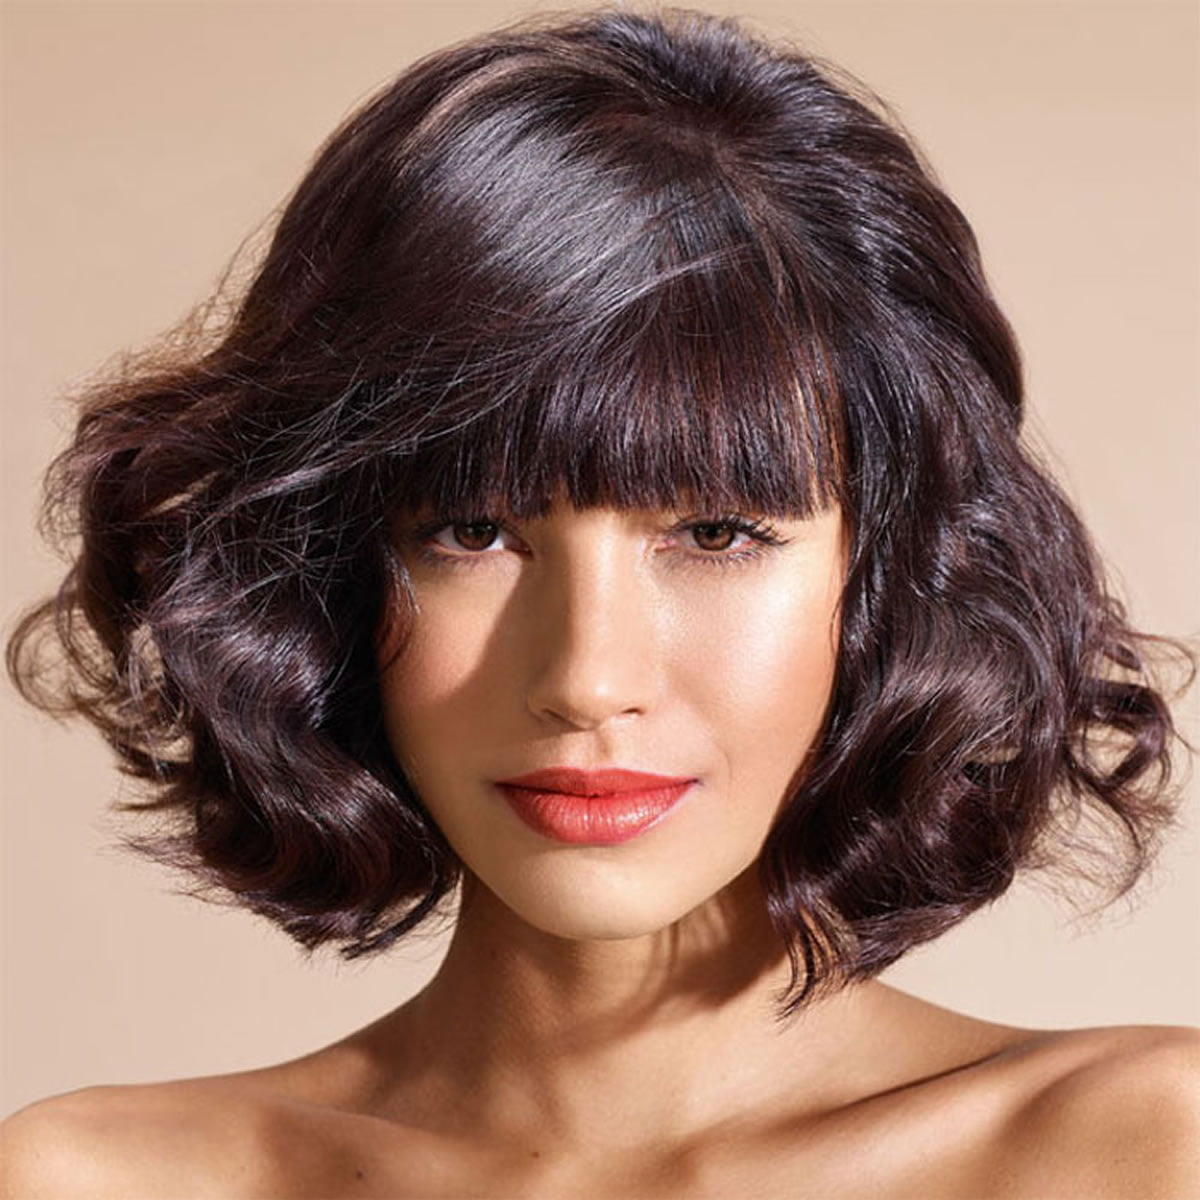 Elevate Styles is the best hair wig company with hair wigs for sale online. For more information and to buy hair wigs online, visit our site today!